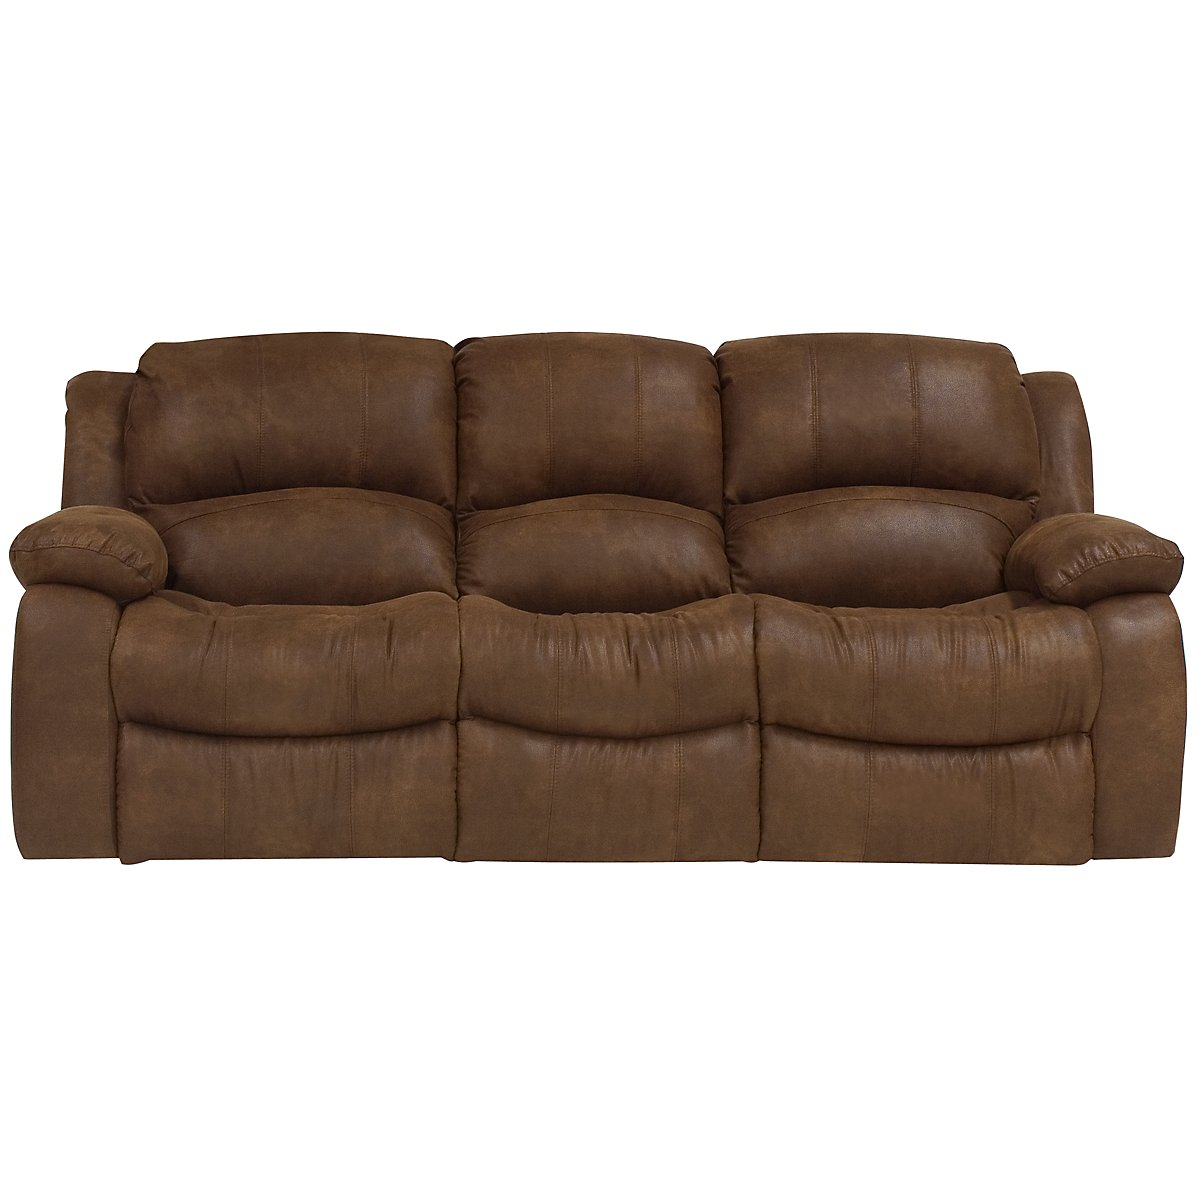 Microfiber Power Reclining Sofa Hereo